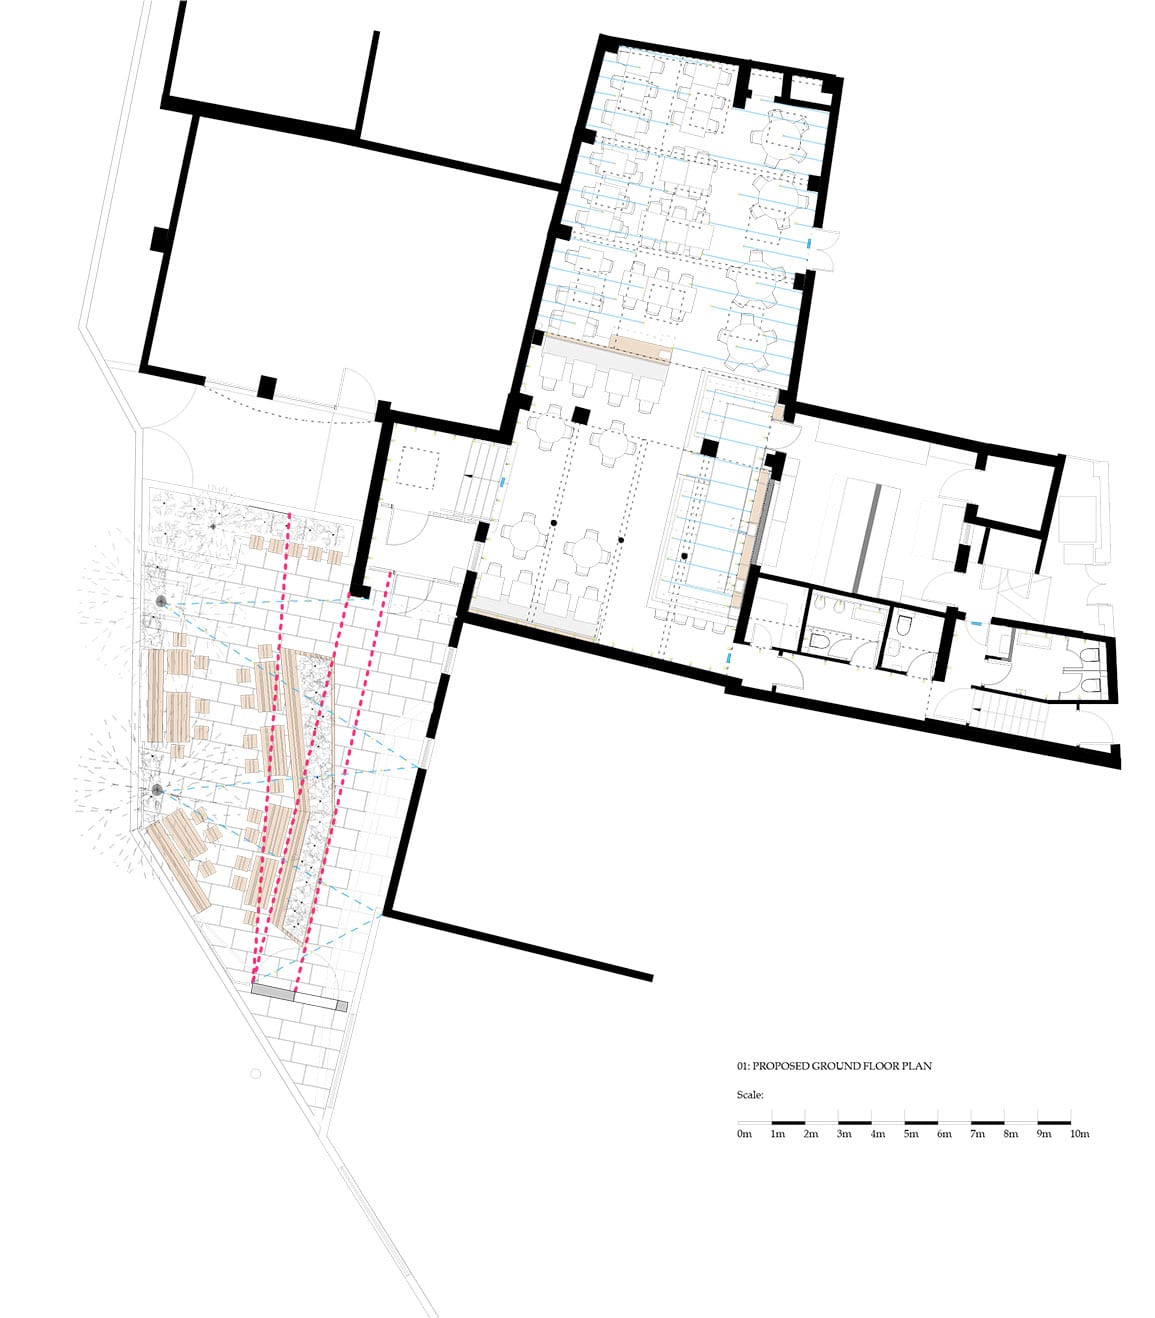 Shears Yard Architectural Emporium Leeds Drawing